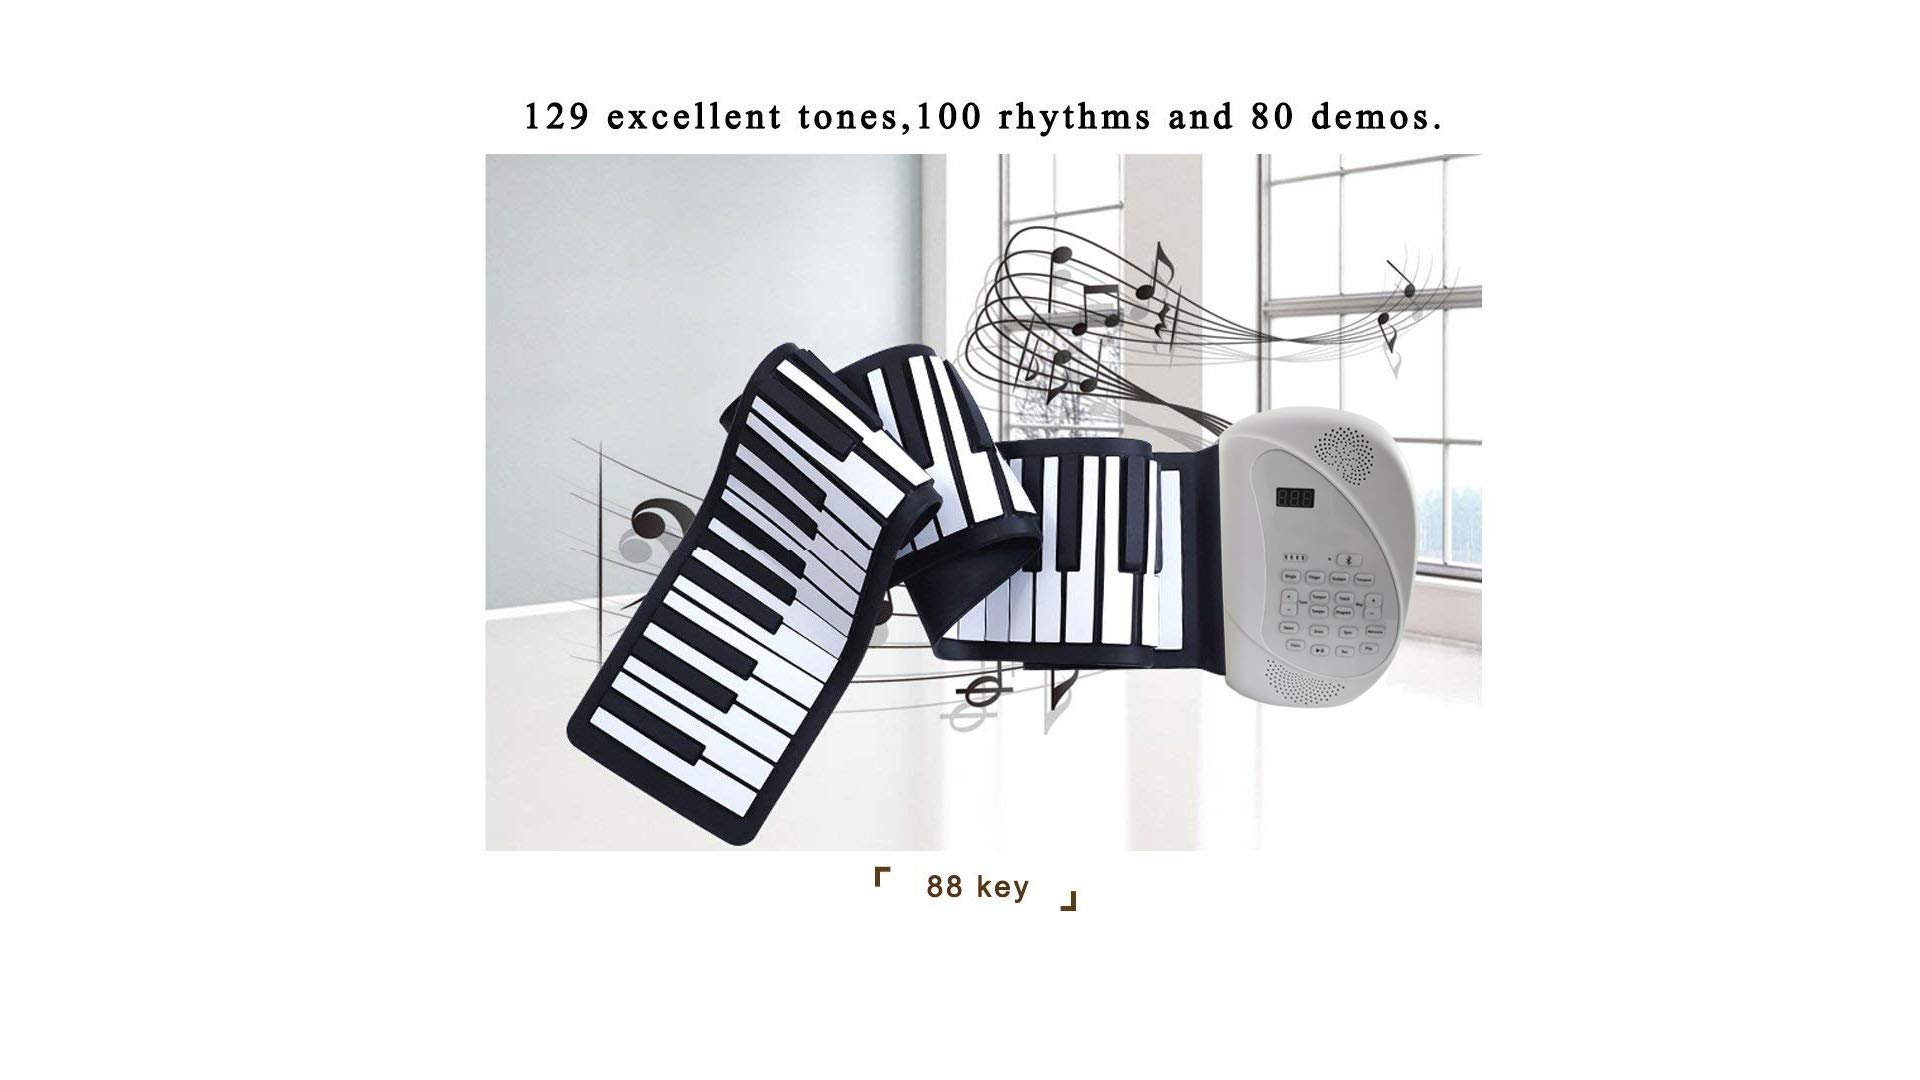 Eshenma Roll up Piano Portable Piano RO-A88 Key Flexible Soft Power Digital roll Keyboard Built-in Loud Dual Speaker can USB Charge AA Battery for Children Beginners (88-2S, White) 2019 Newest by Eshenma (Image #3)